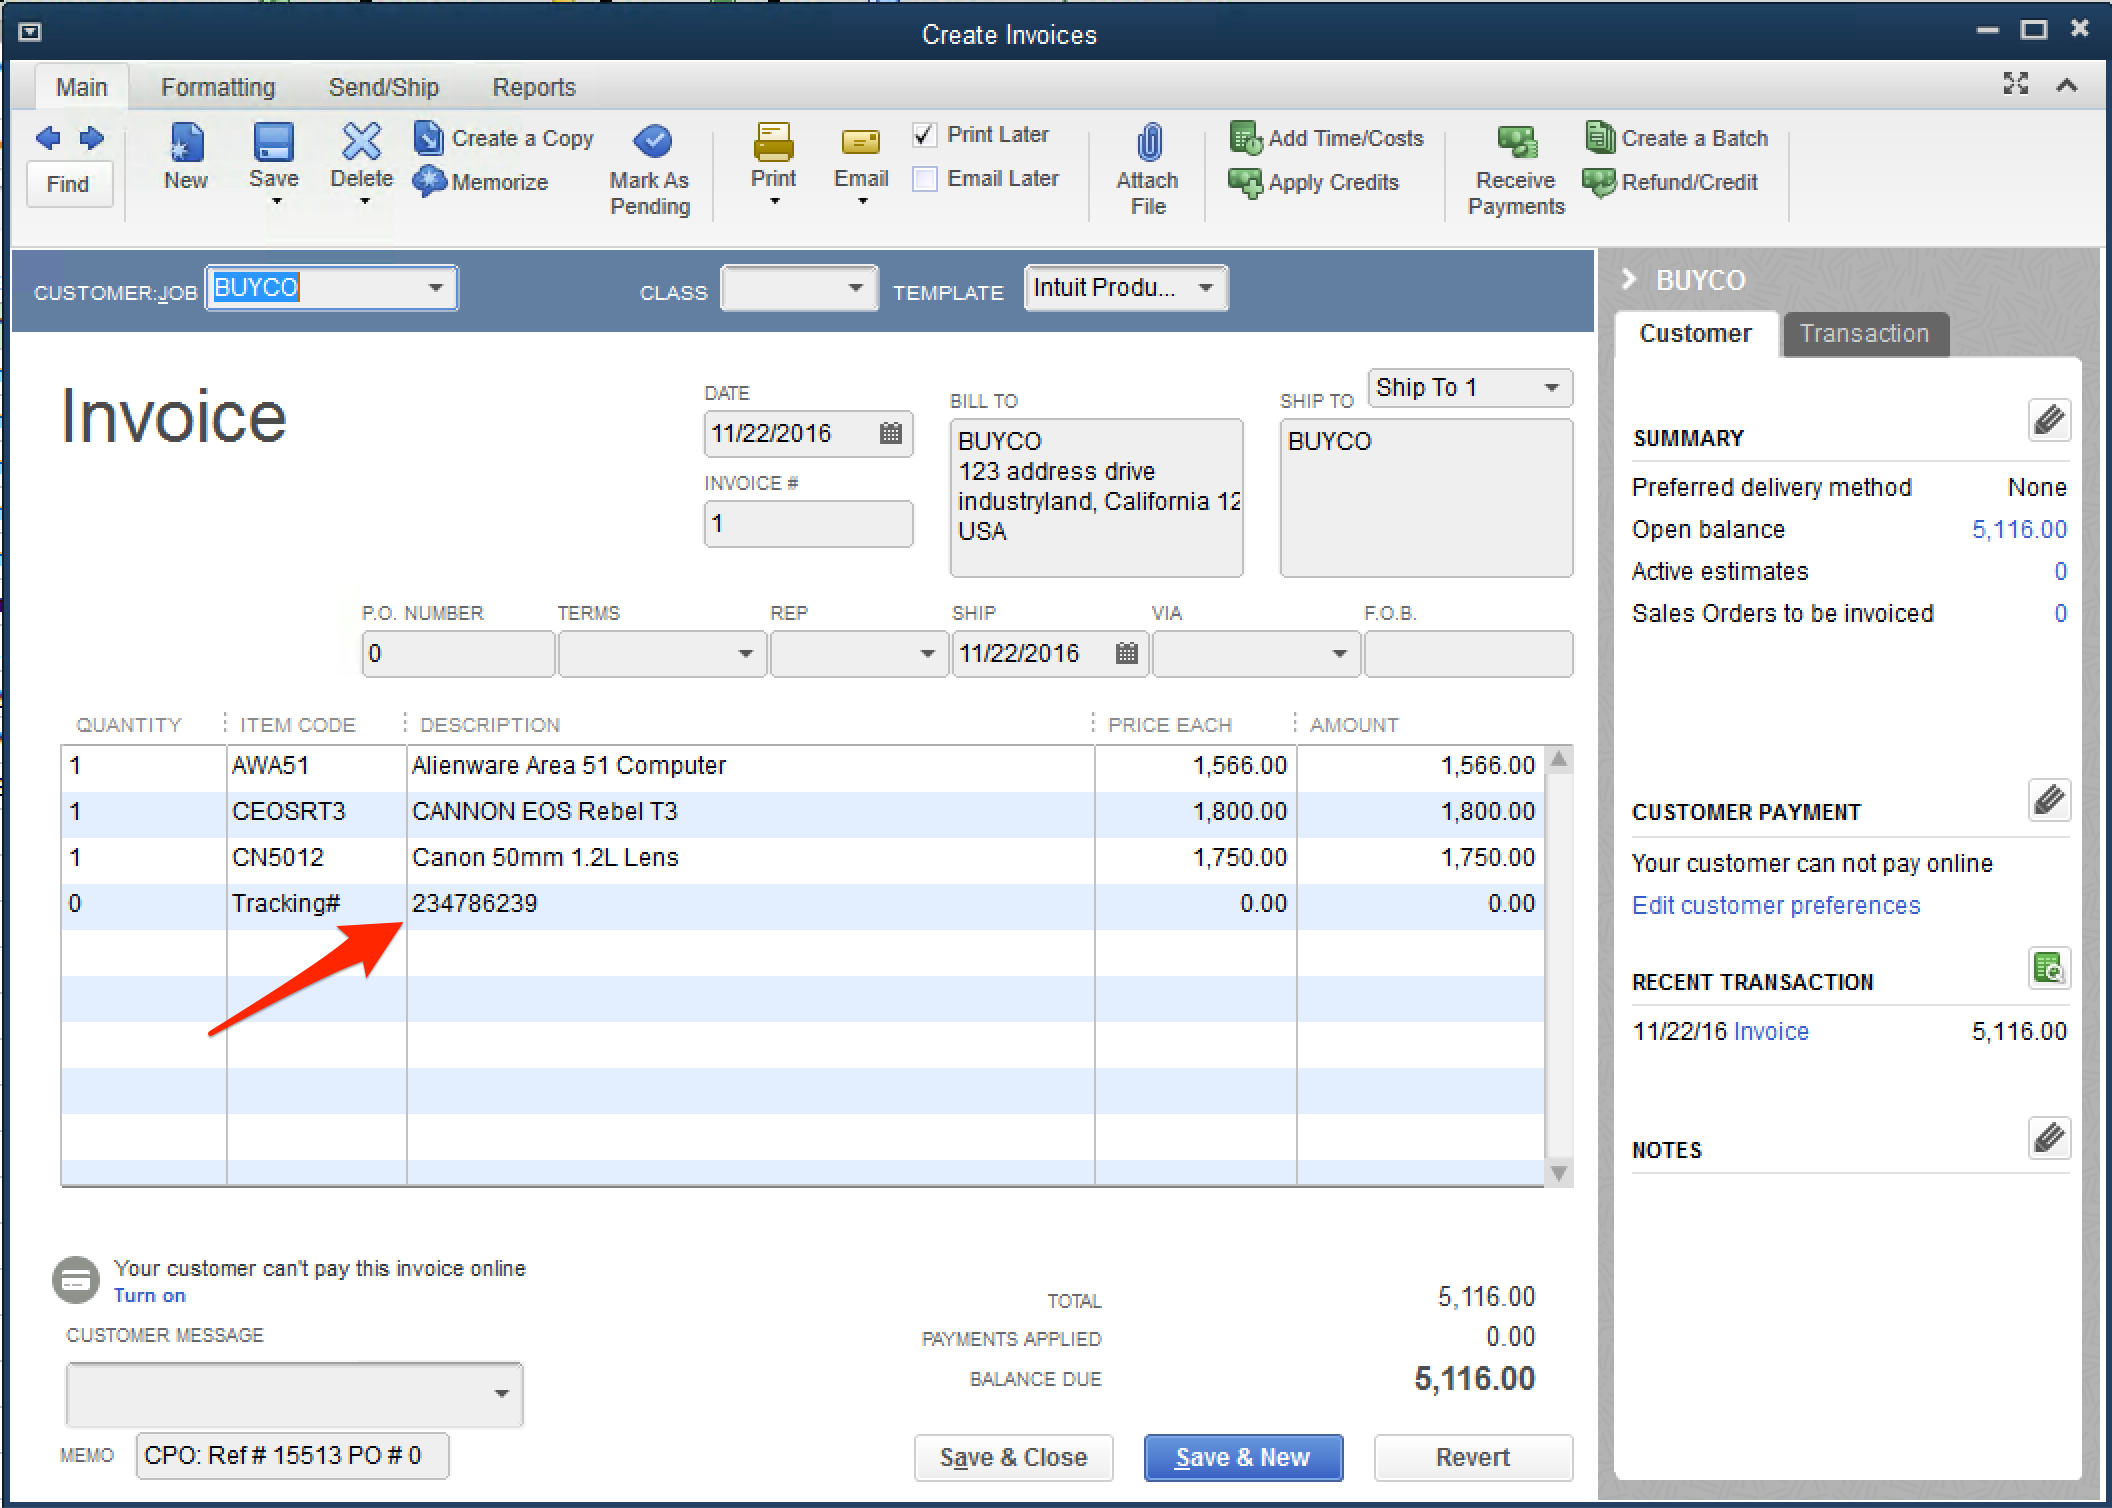 How To Enable Tracking Number Export To QuickBooks - Quickbooks invoice number